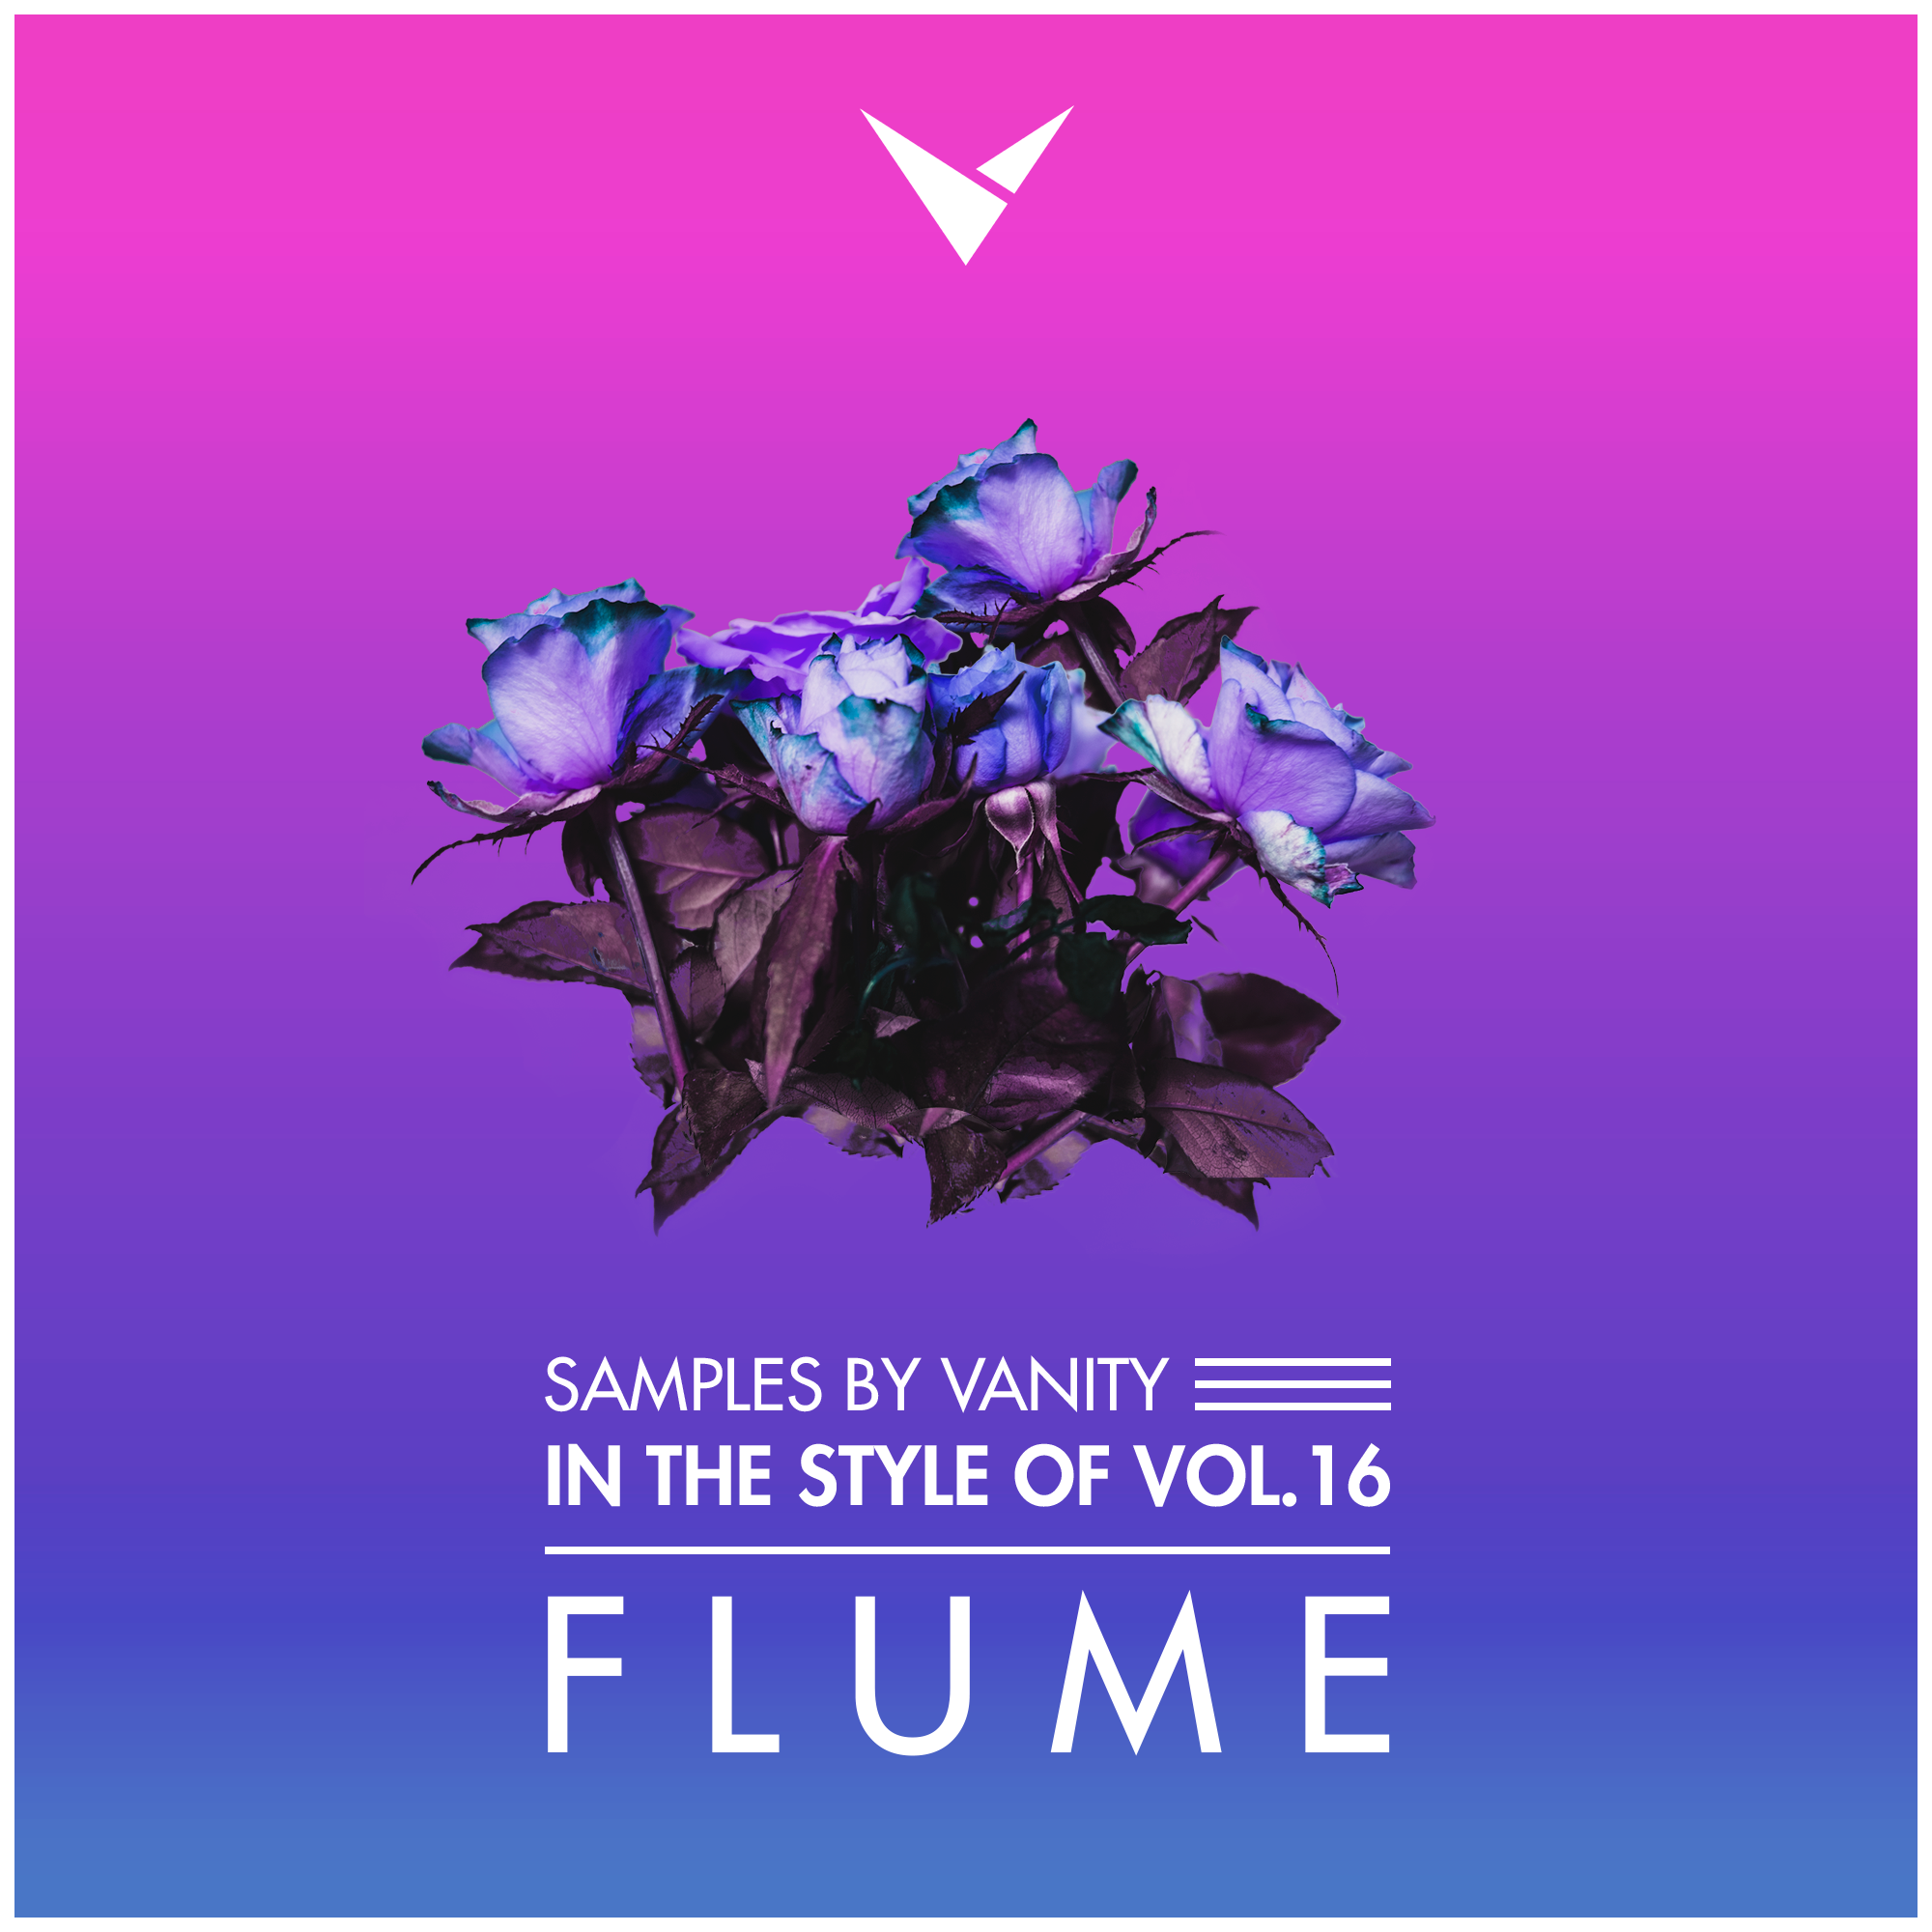 FLUME - IN THE STYLE OF VOL.16 ABLETON PROJECT